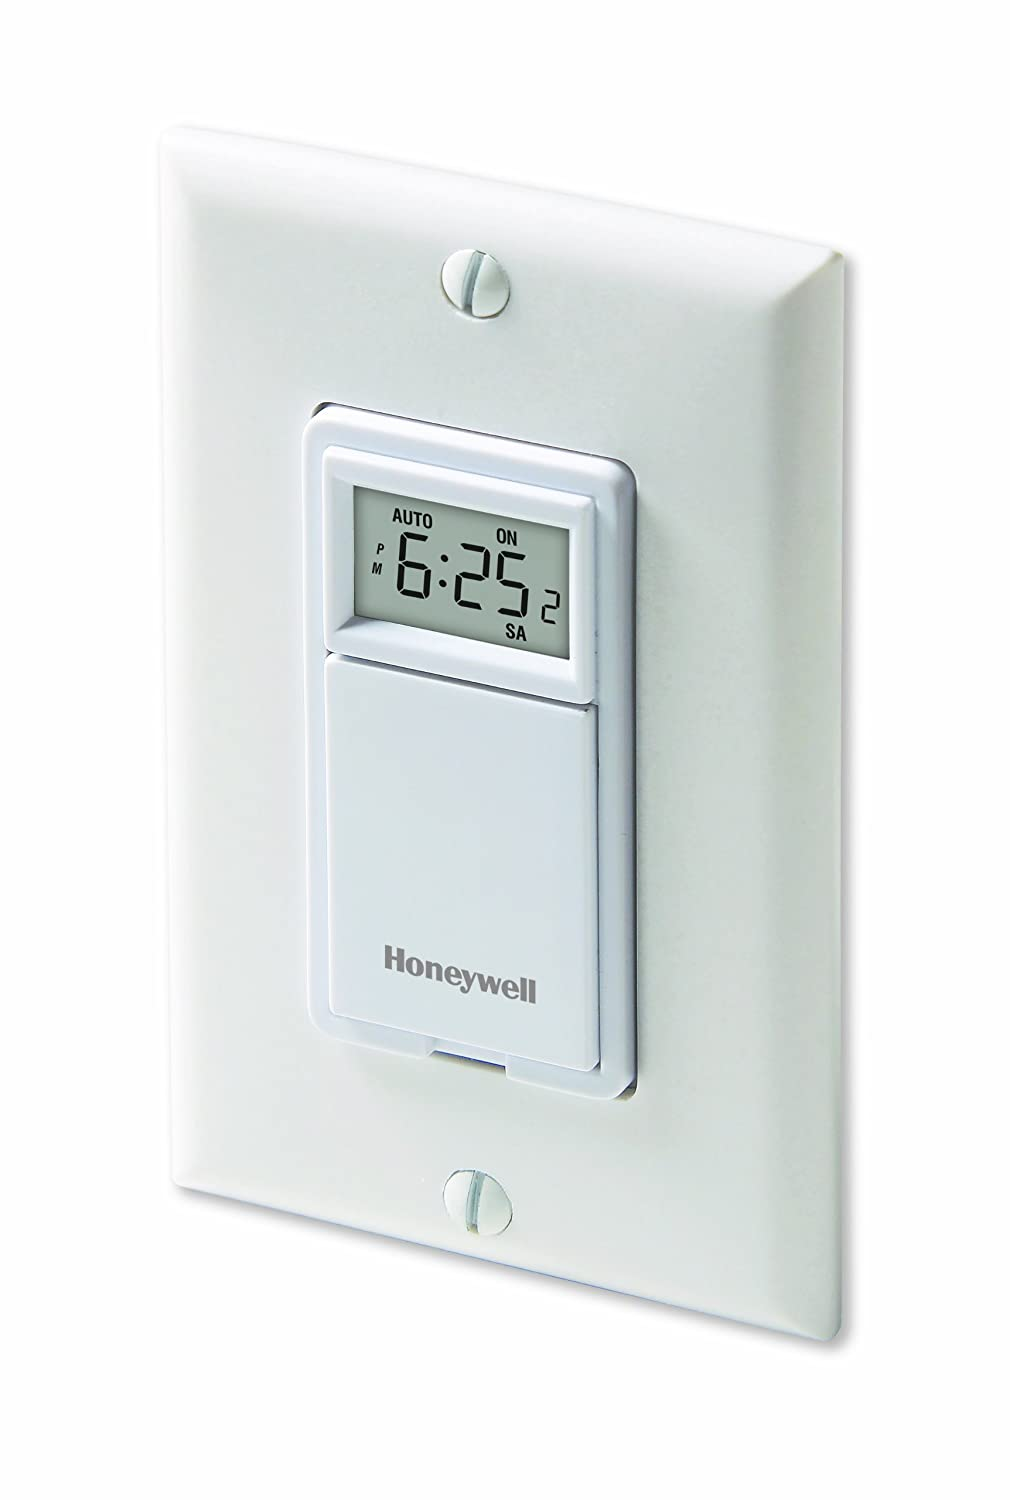 Honeywell Rpls530a 7 Day Programmable Timer Switch Outside Light Wiring White Requires 40 W Minimum Home Improvement